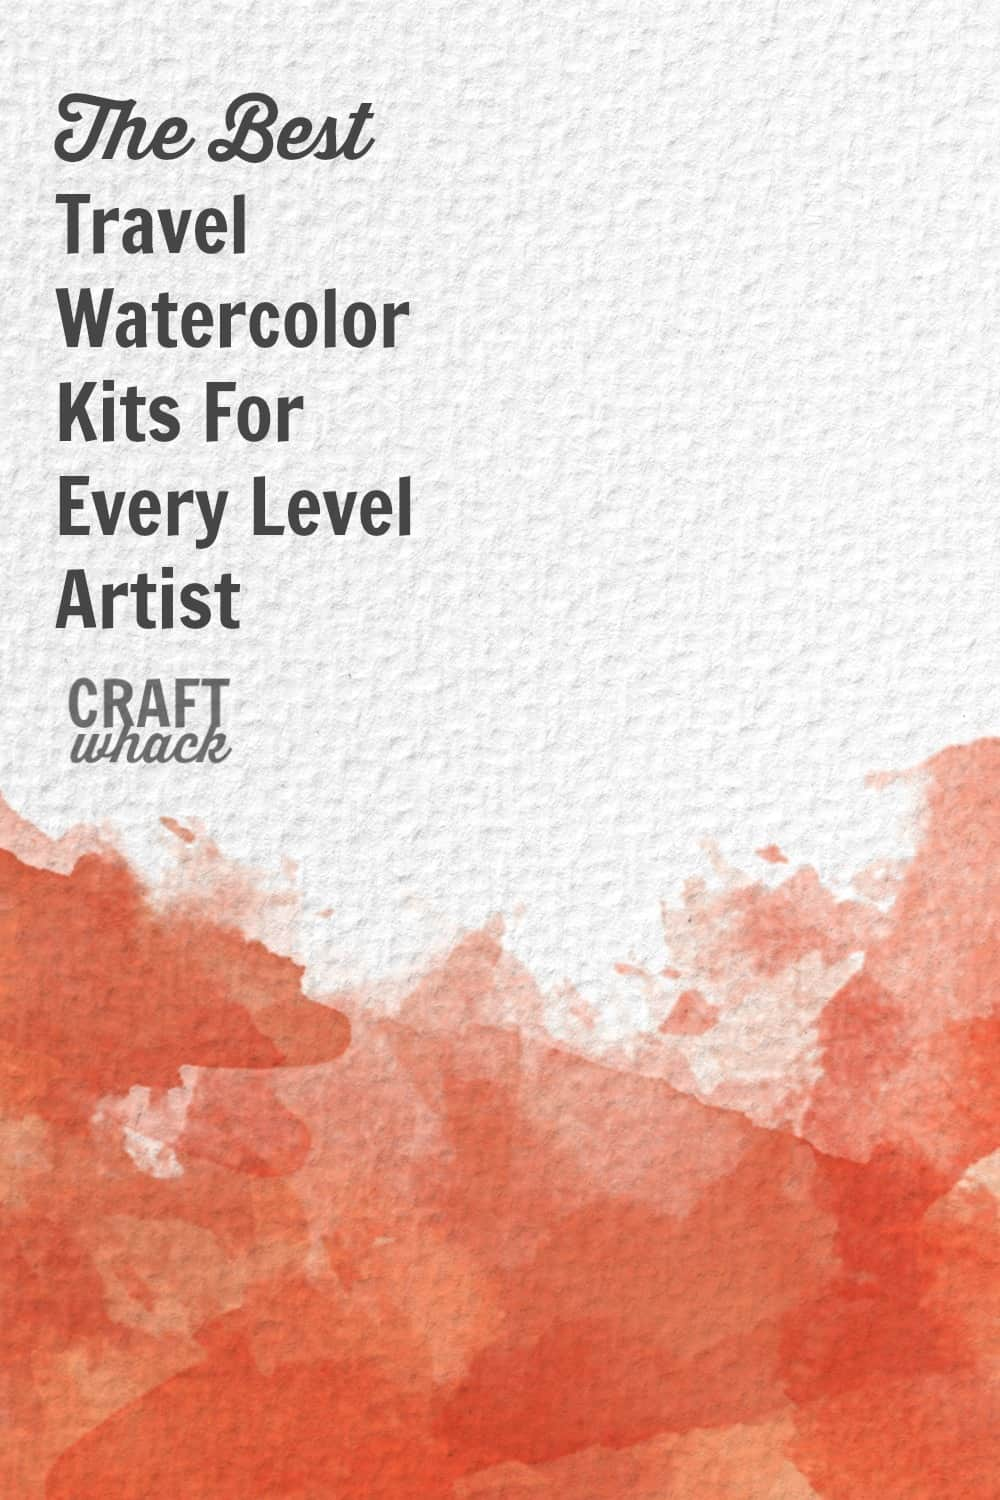 travel watercolor kits